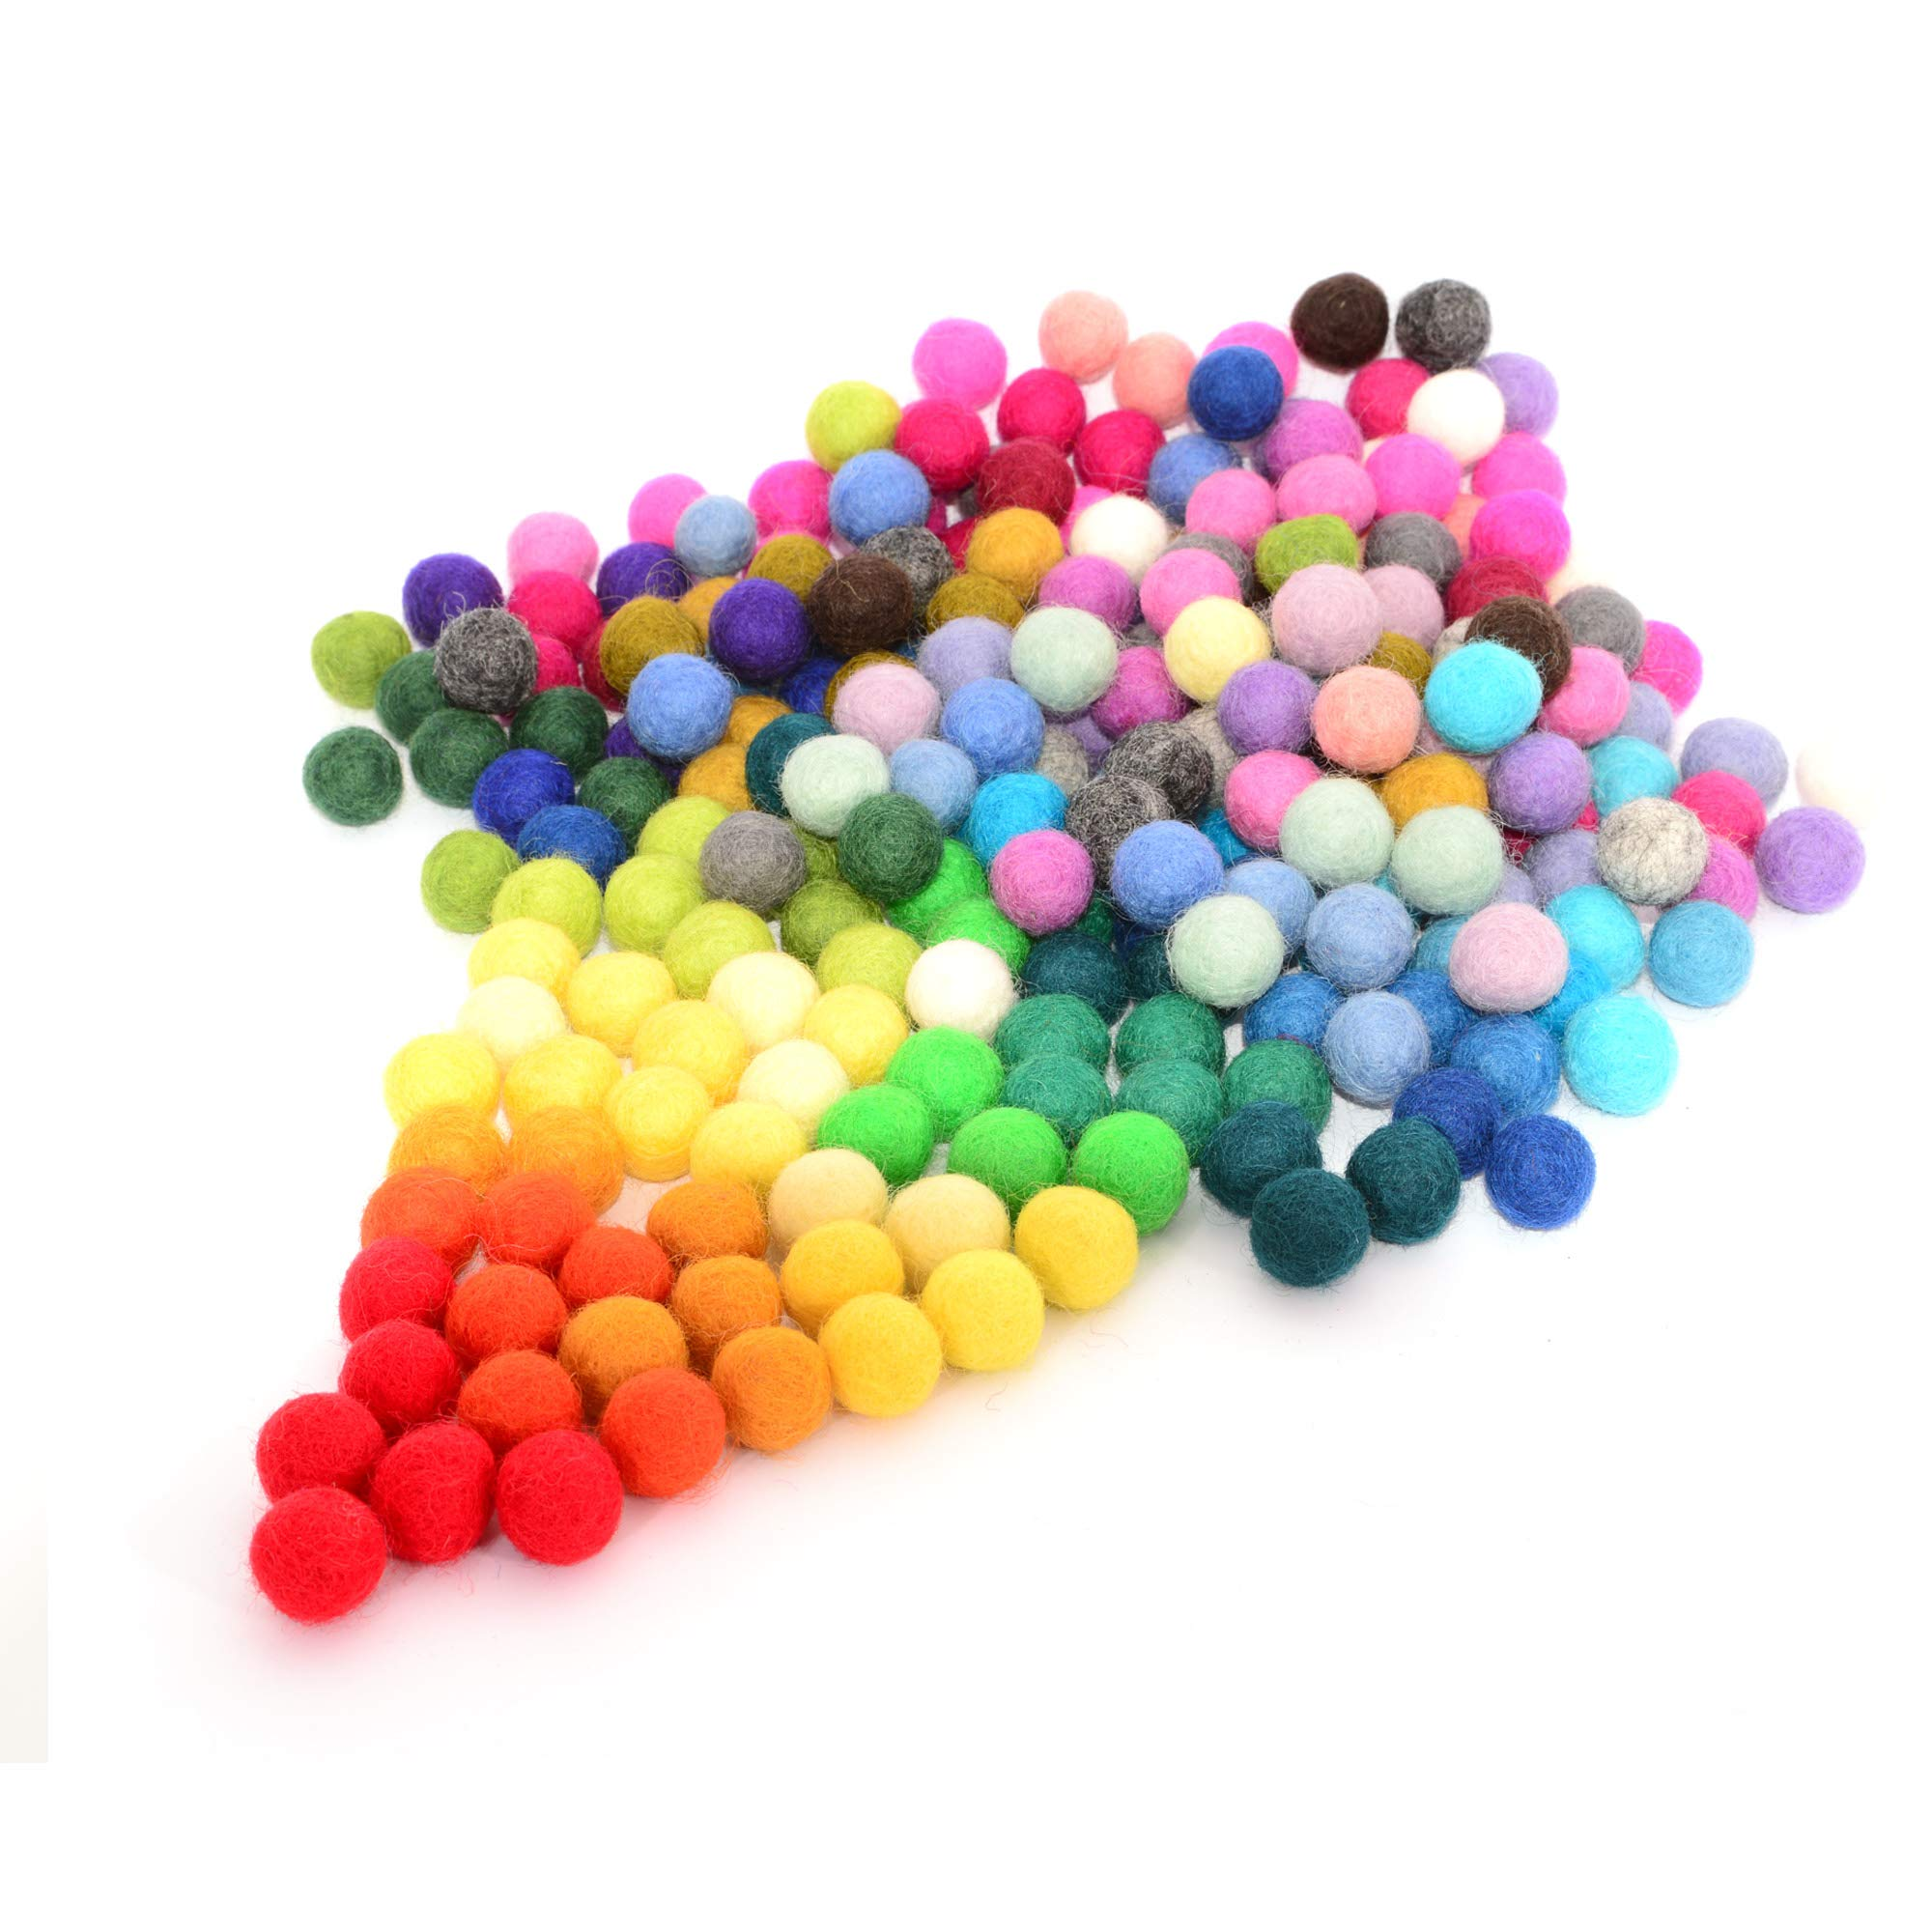 Glaciart One Felt Pom Poms, Wool Balls (240 Pieces) 2.5 centimeters - 1 Inch, Handmade Felted 40 Color (Red, Pink, Blue, Orange, Yellow, Gray, Pastel and More) Bulk Small Puff for Felting and Garland by Glaciart One